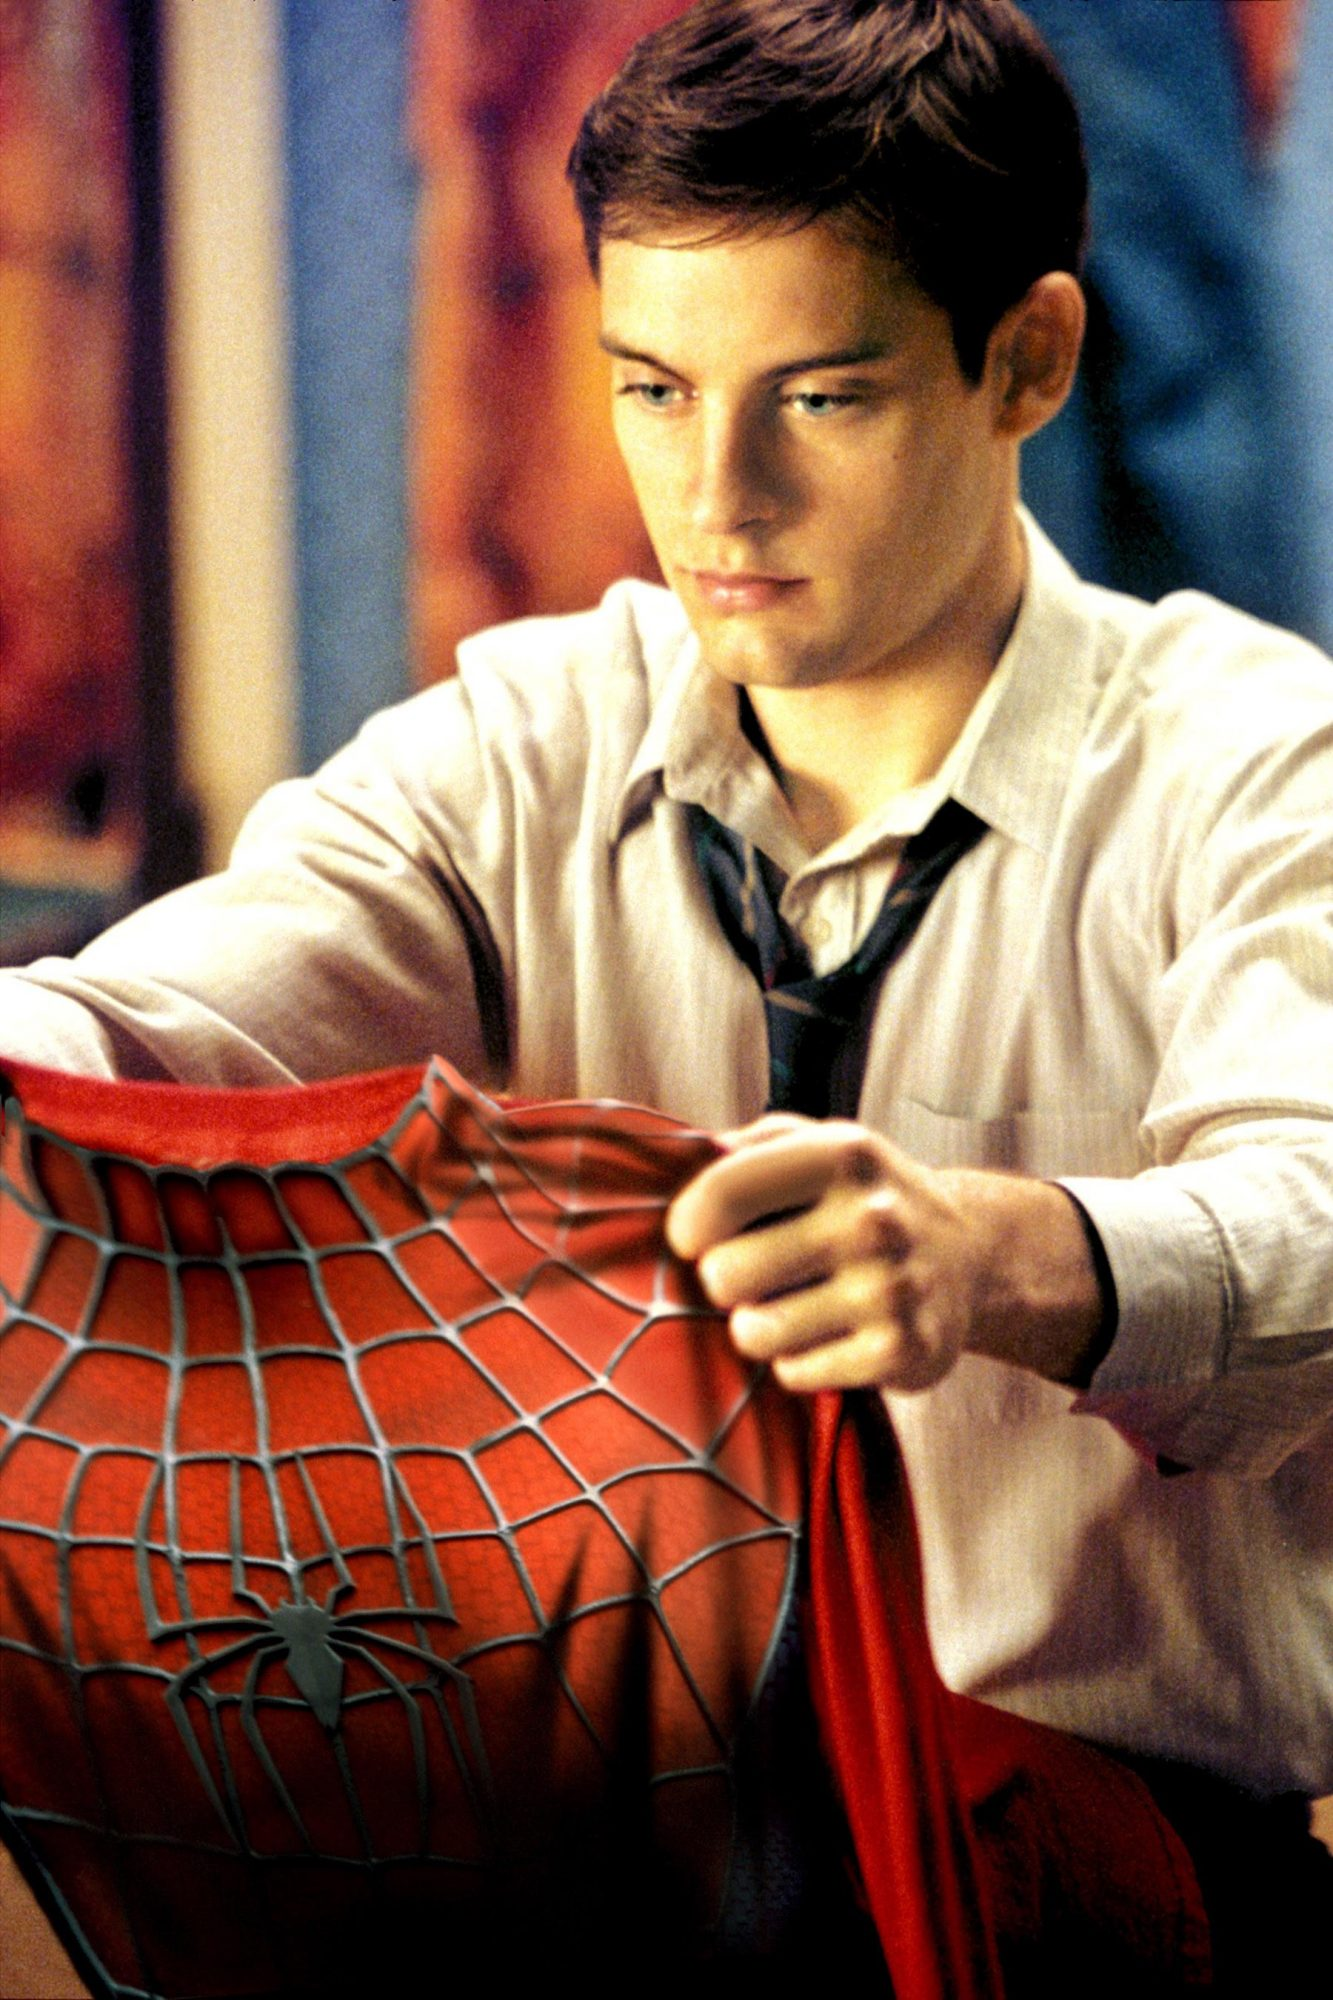 SPIDER-MAN, Tobey Maguire, 2002, (c)Columbia Pictures/courtesy Everett Collection